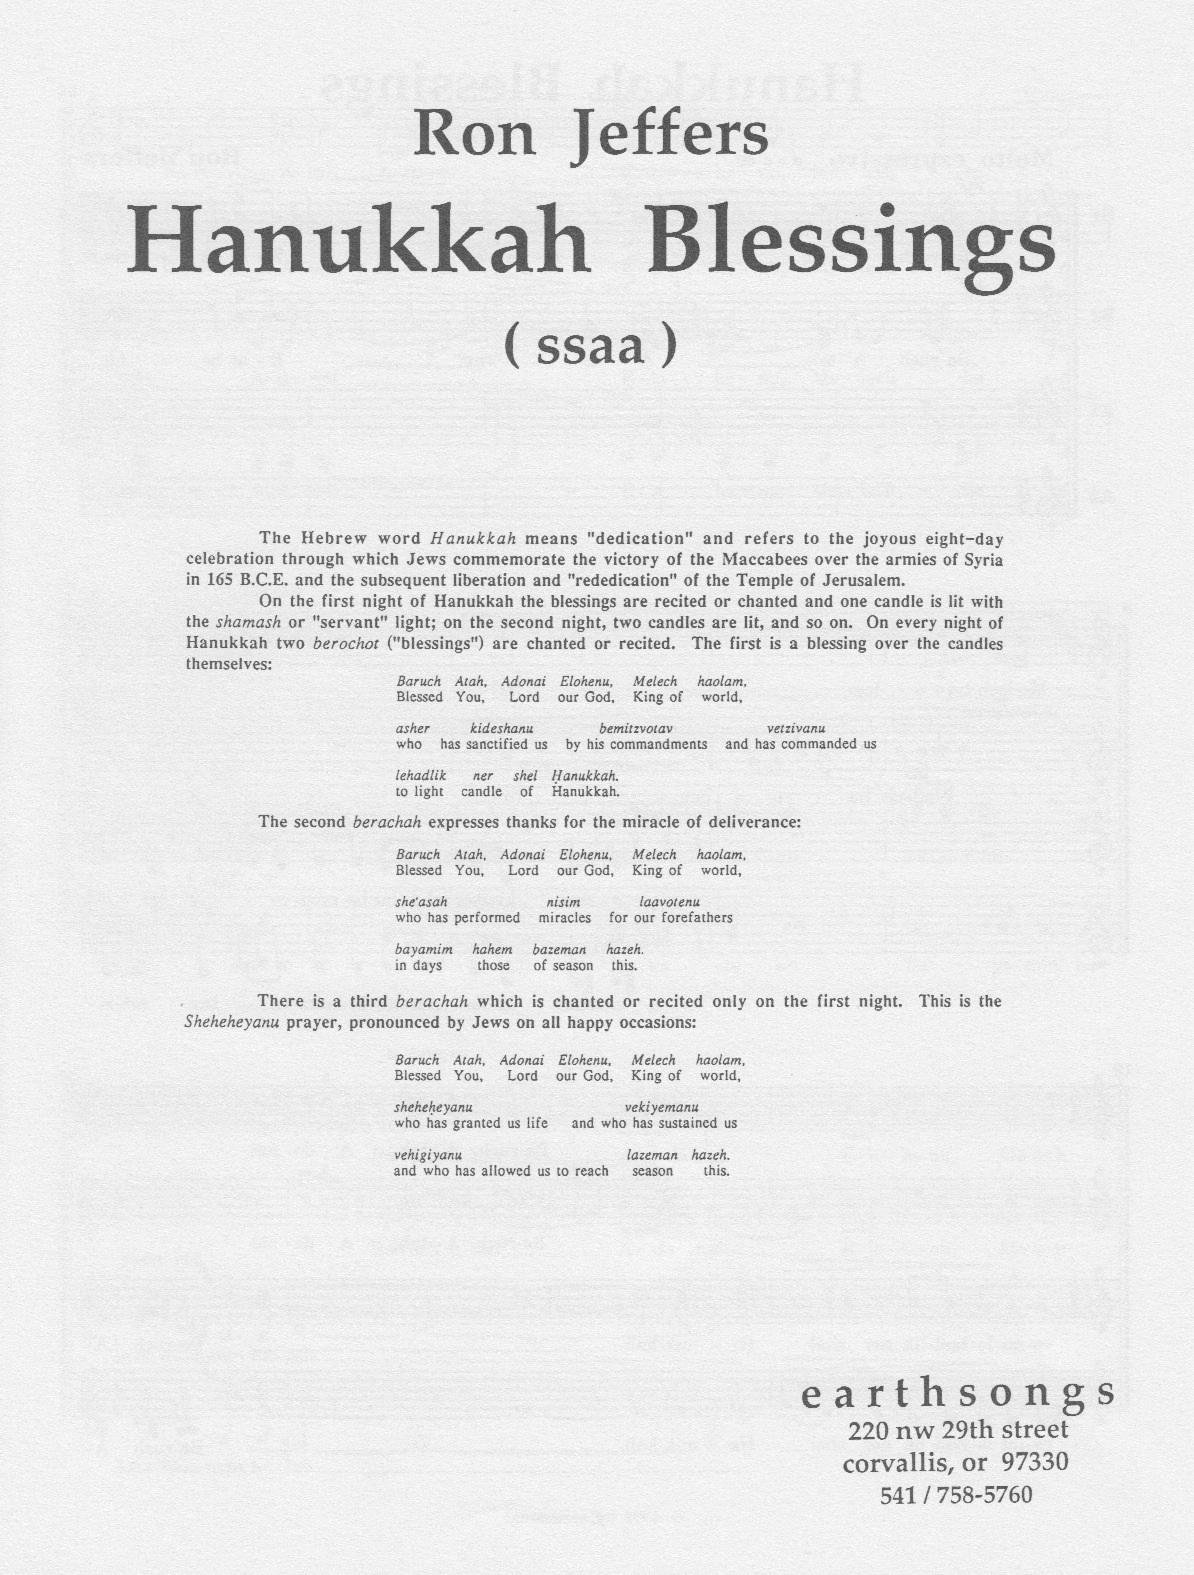 hanukkah blessings (ssa)